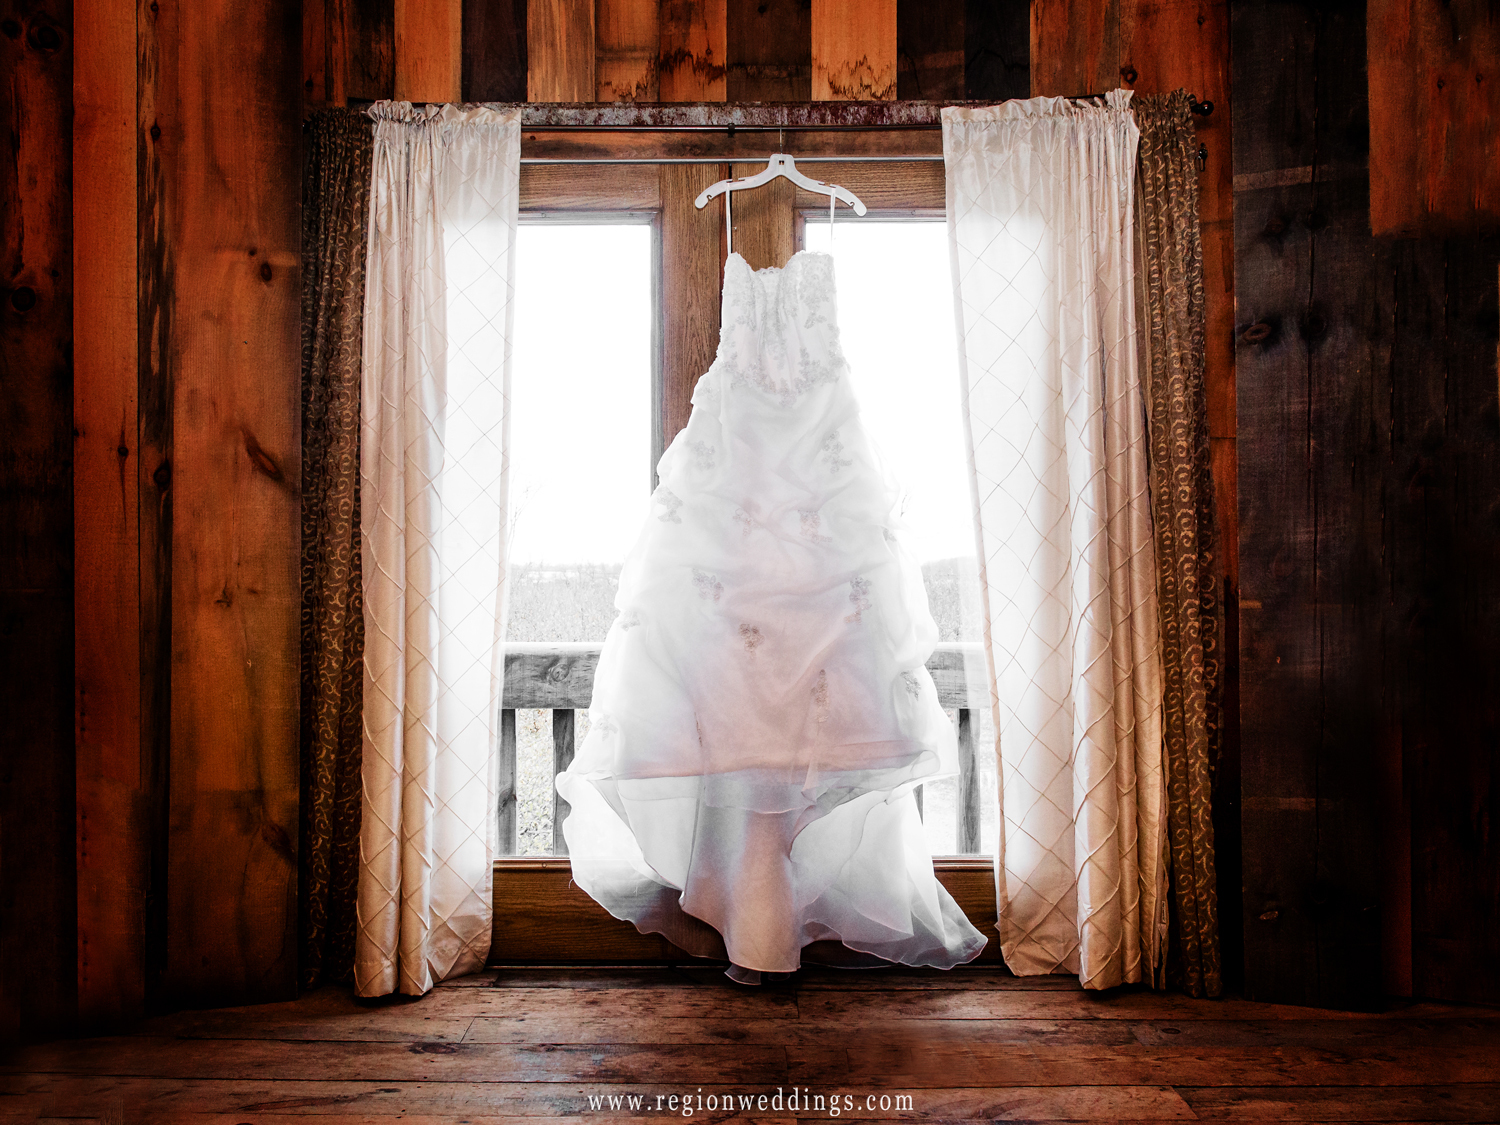 The wedding dress hangs in front of the window inside the silo bridal suite at County Line Orchard.